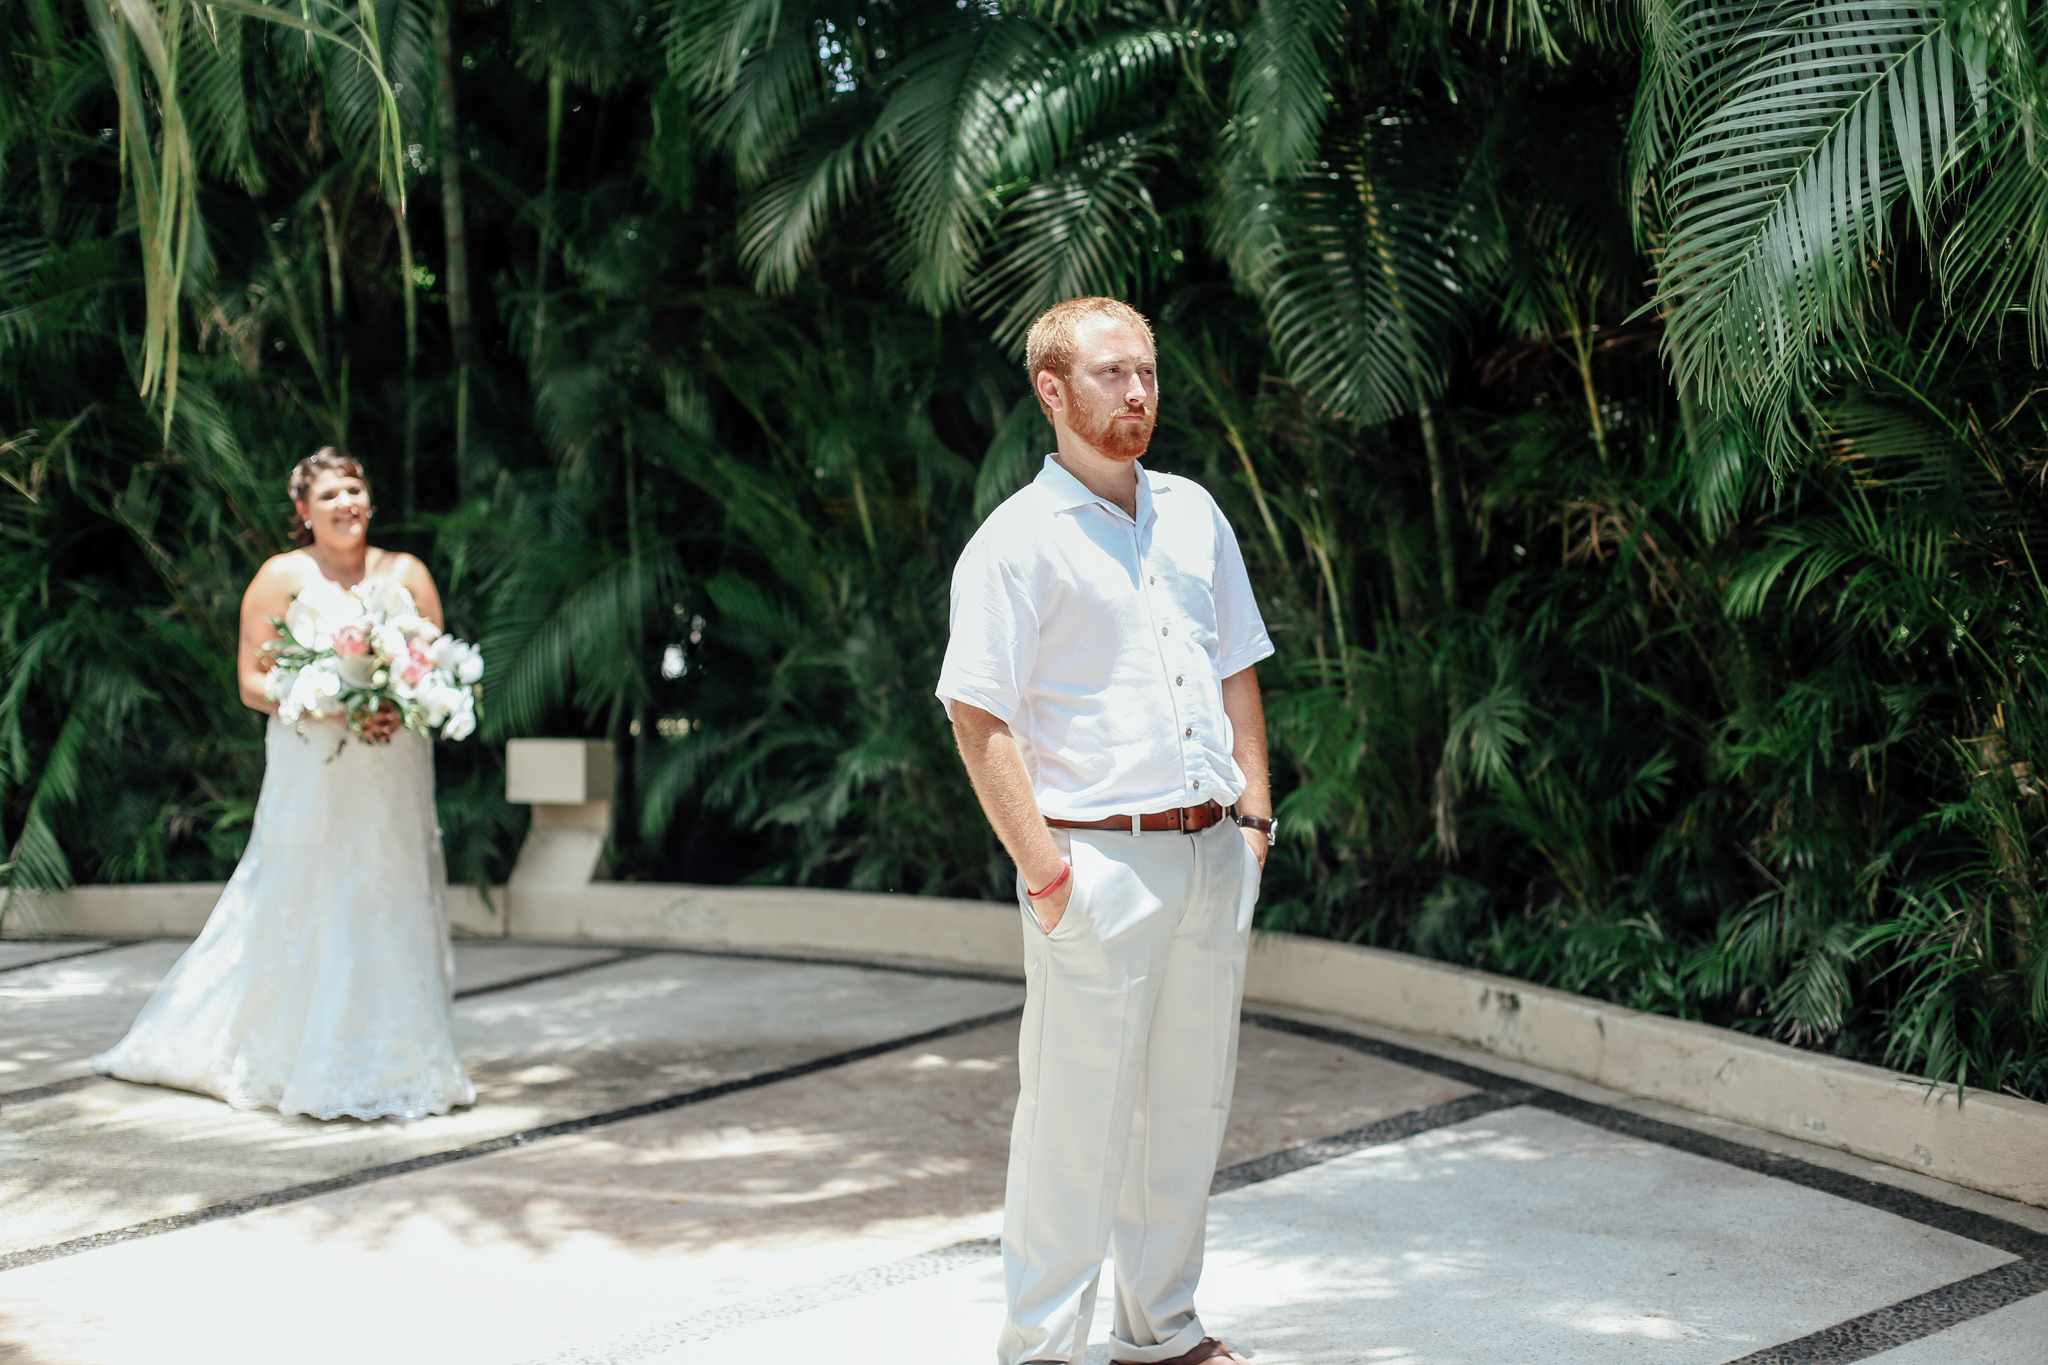 Tiffany and Ryan - Puerto Vallarta Wedding Photographer - 38.jpg